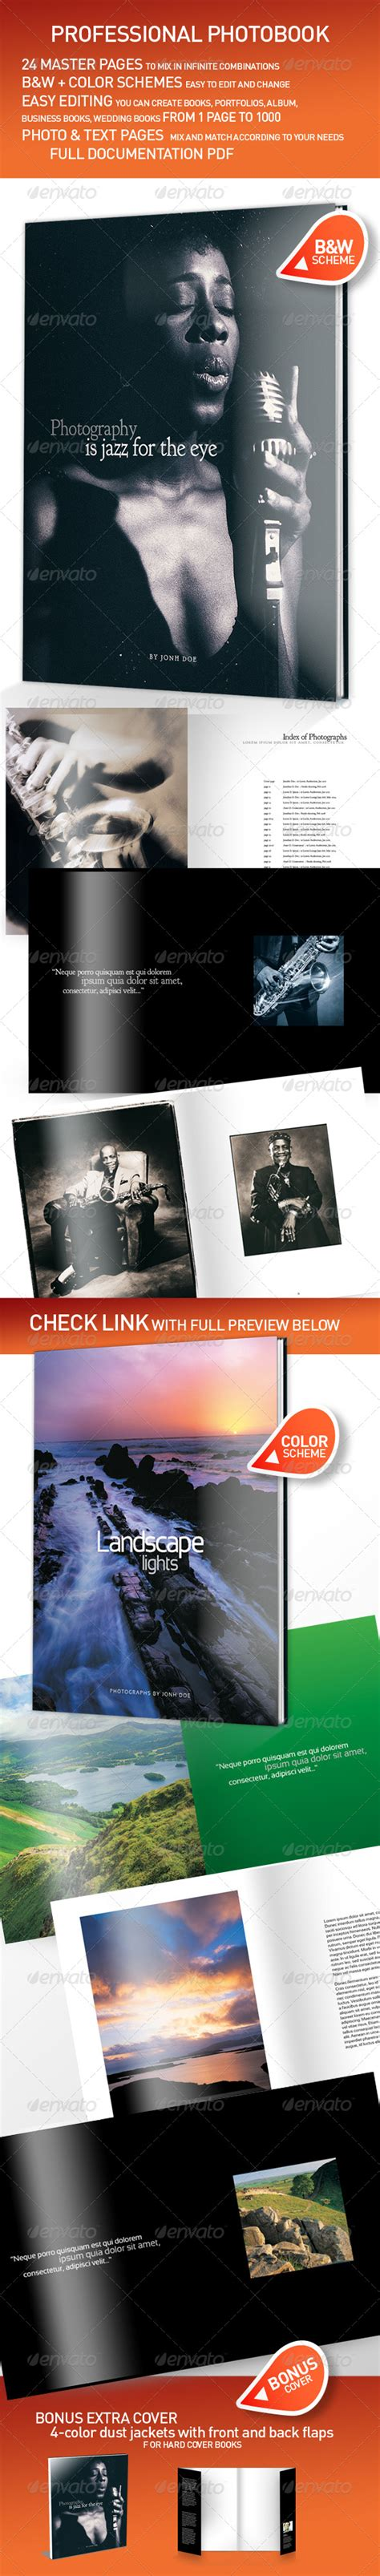 photo album layout indesign professional photobook template indesign graphicriver